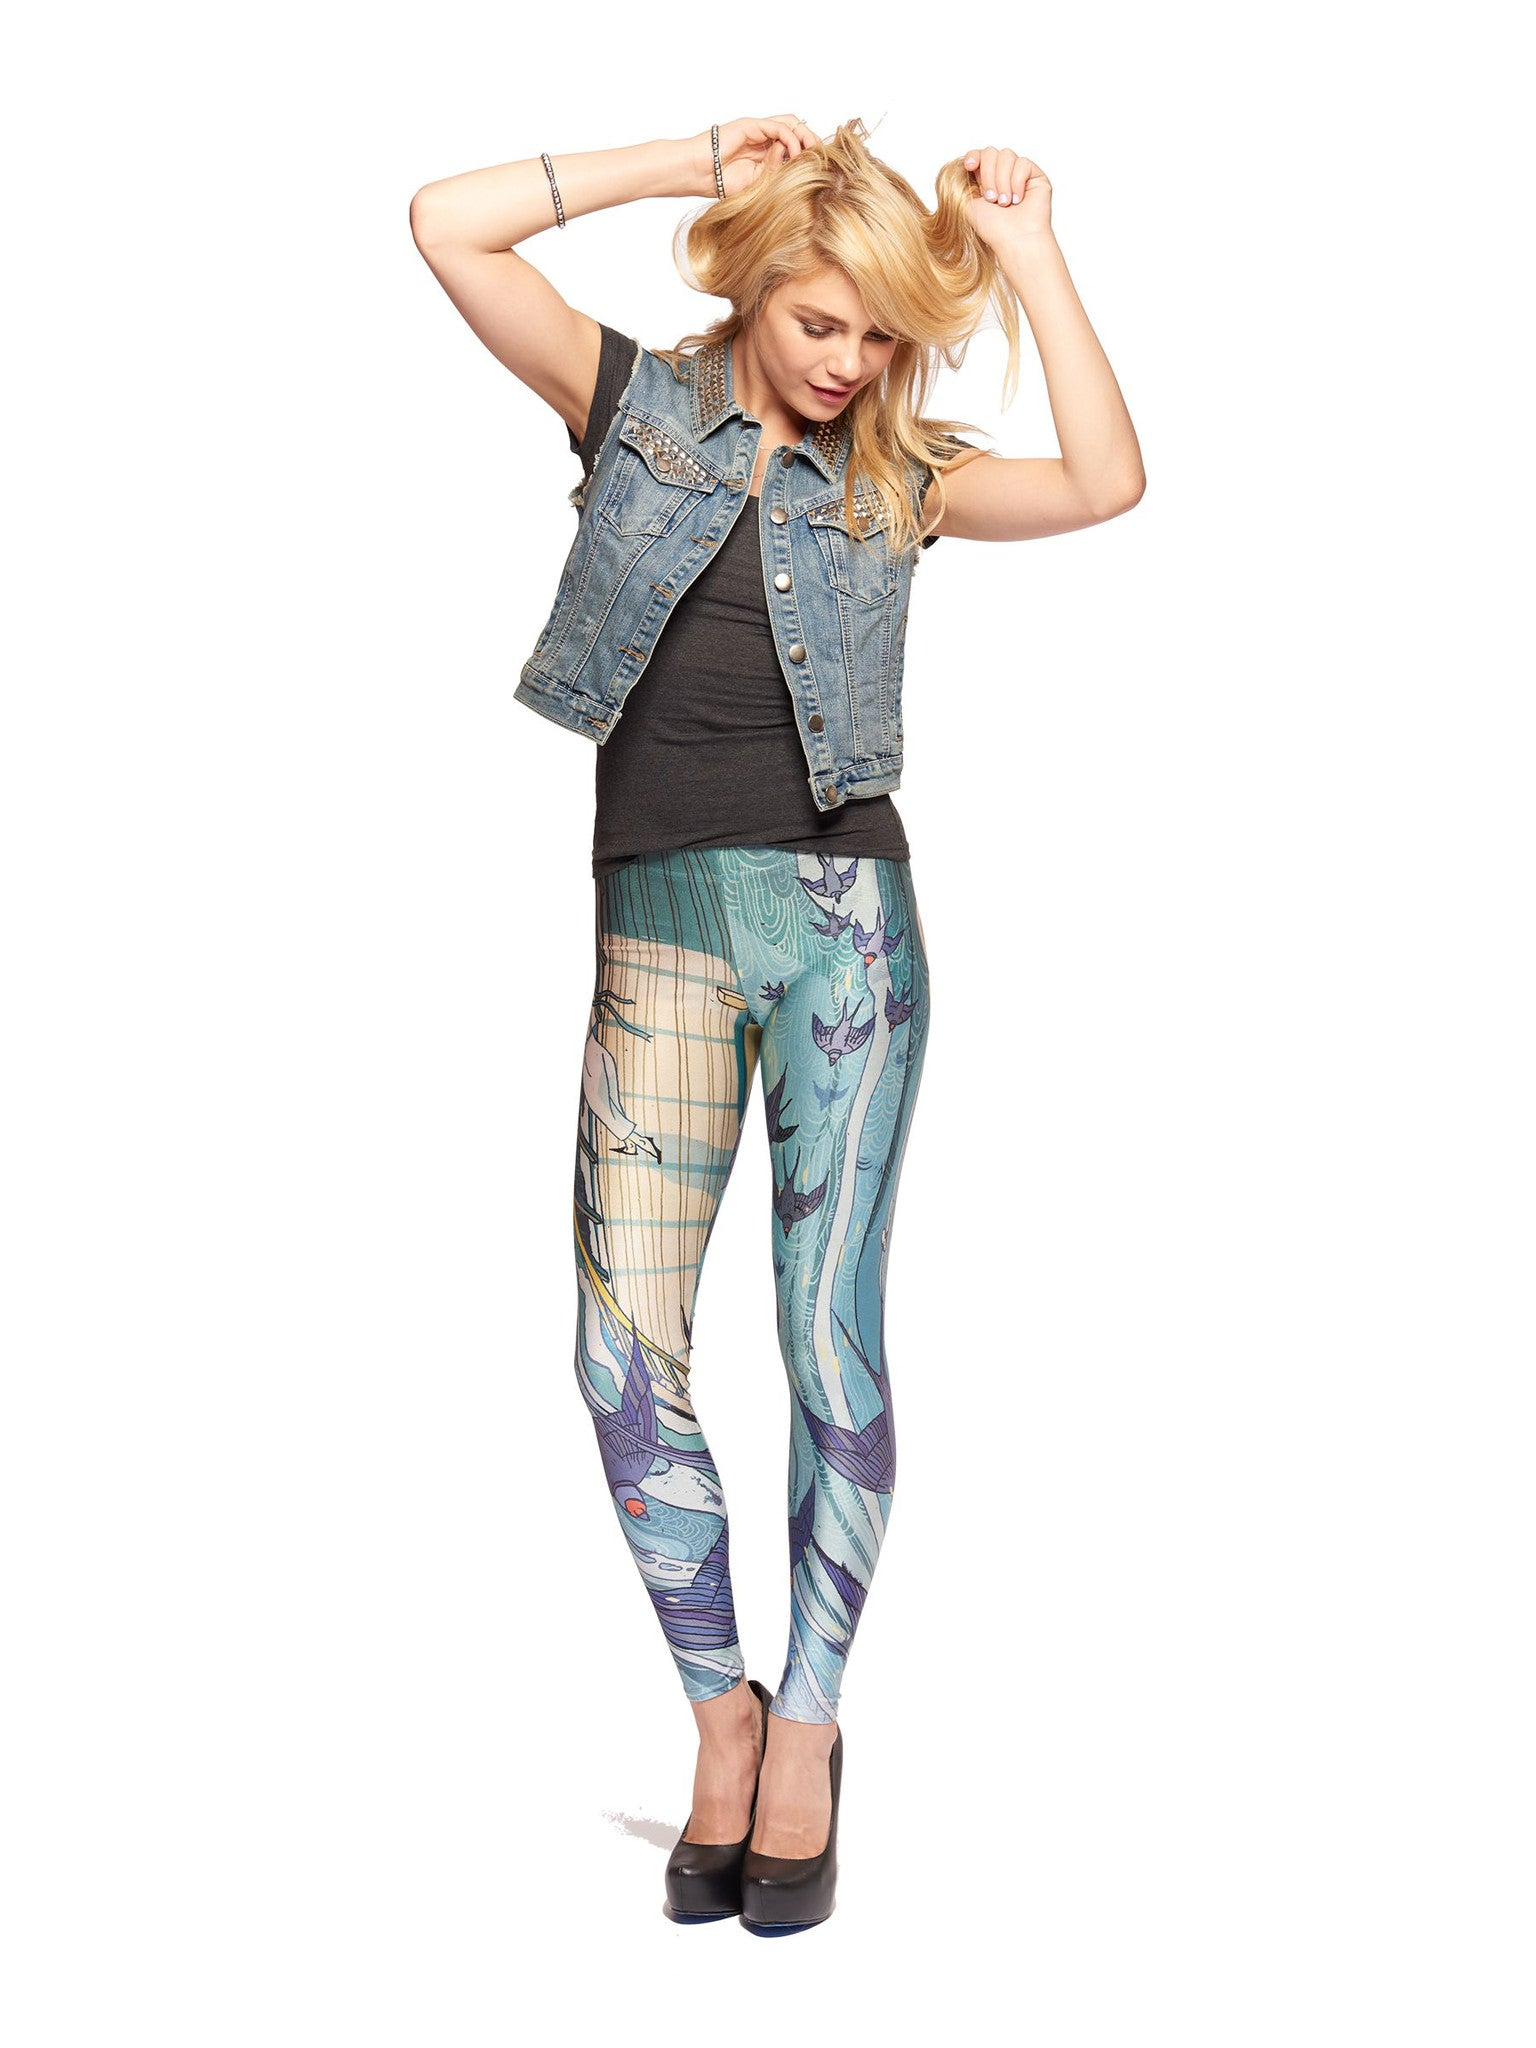 Cassarole Queen West Leggings - Nuvango  - 1